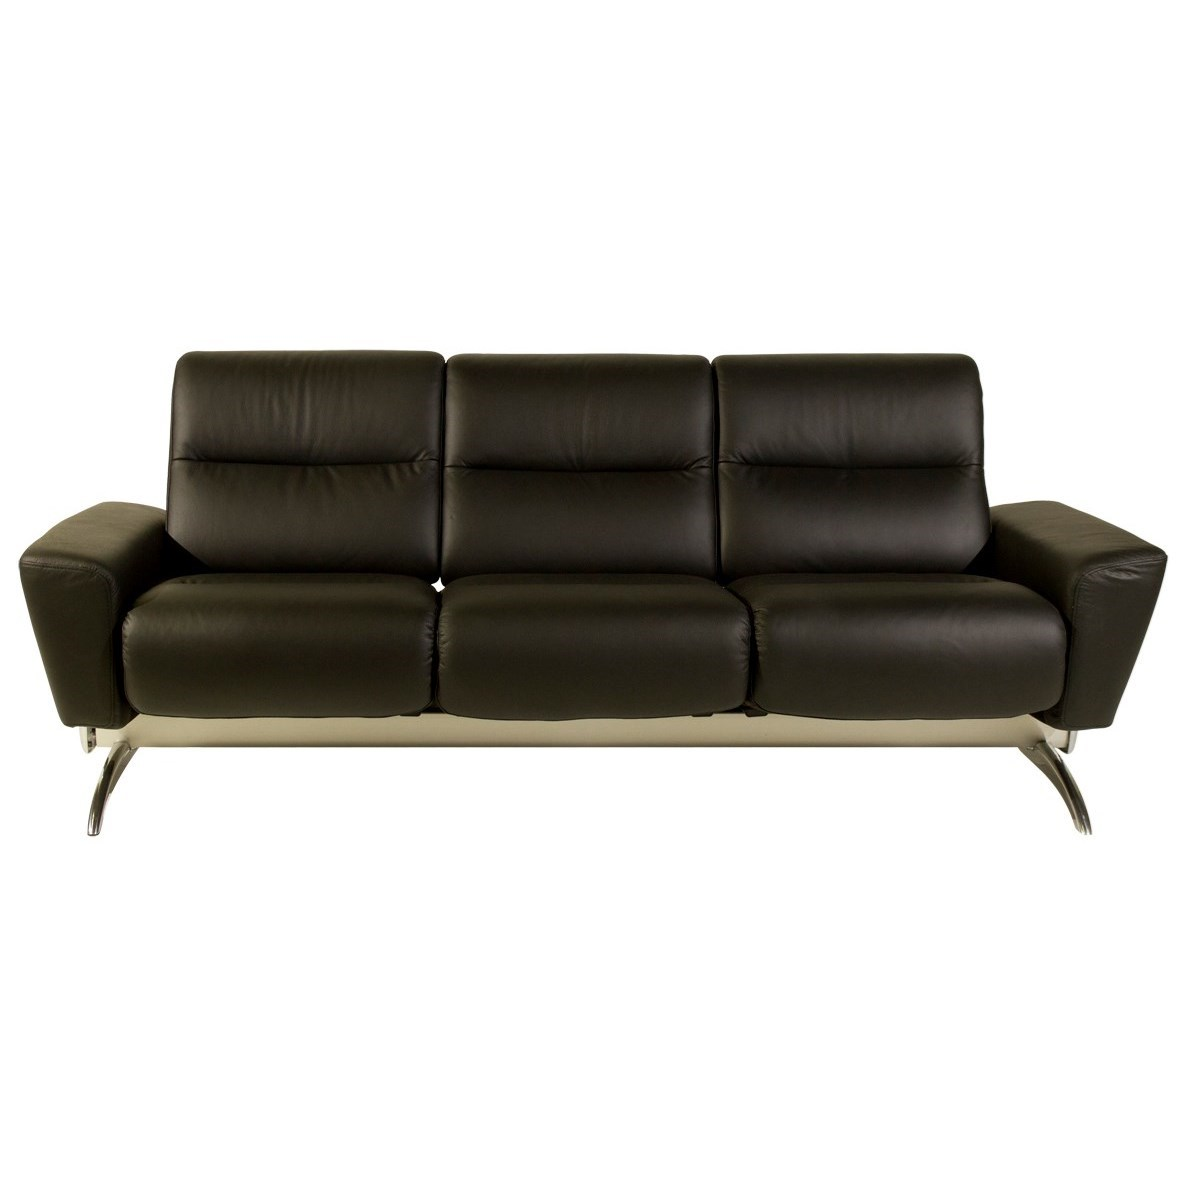 Stressless By Ekornes Stressless You Julia 3 Seater Sofa With Balanceadapt Fashion Furniture